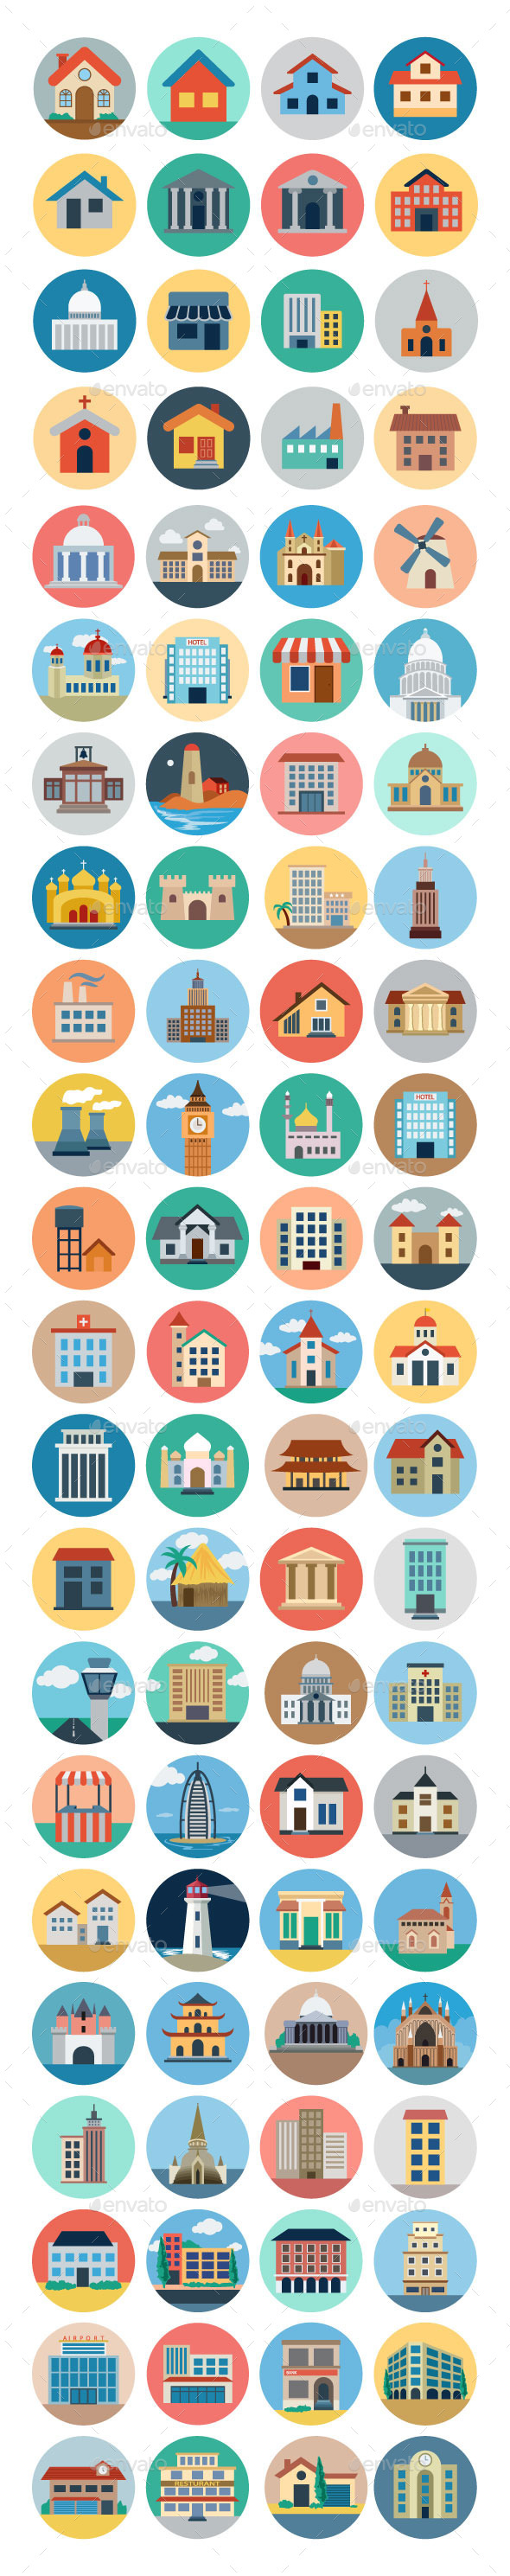 GraphicRiver 75& Flat Building Icons 11164803